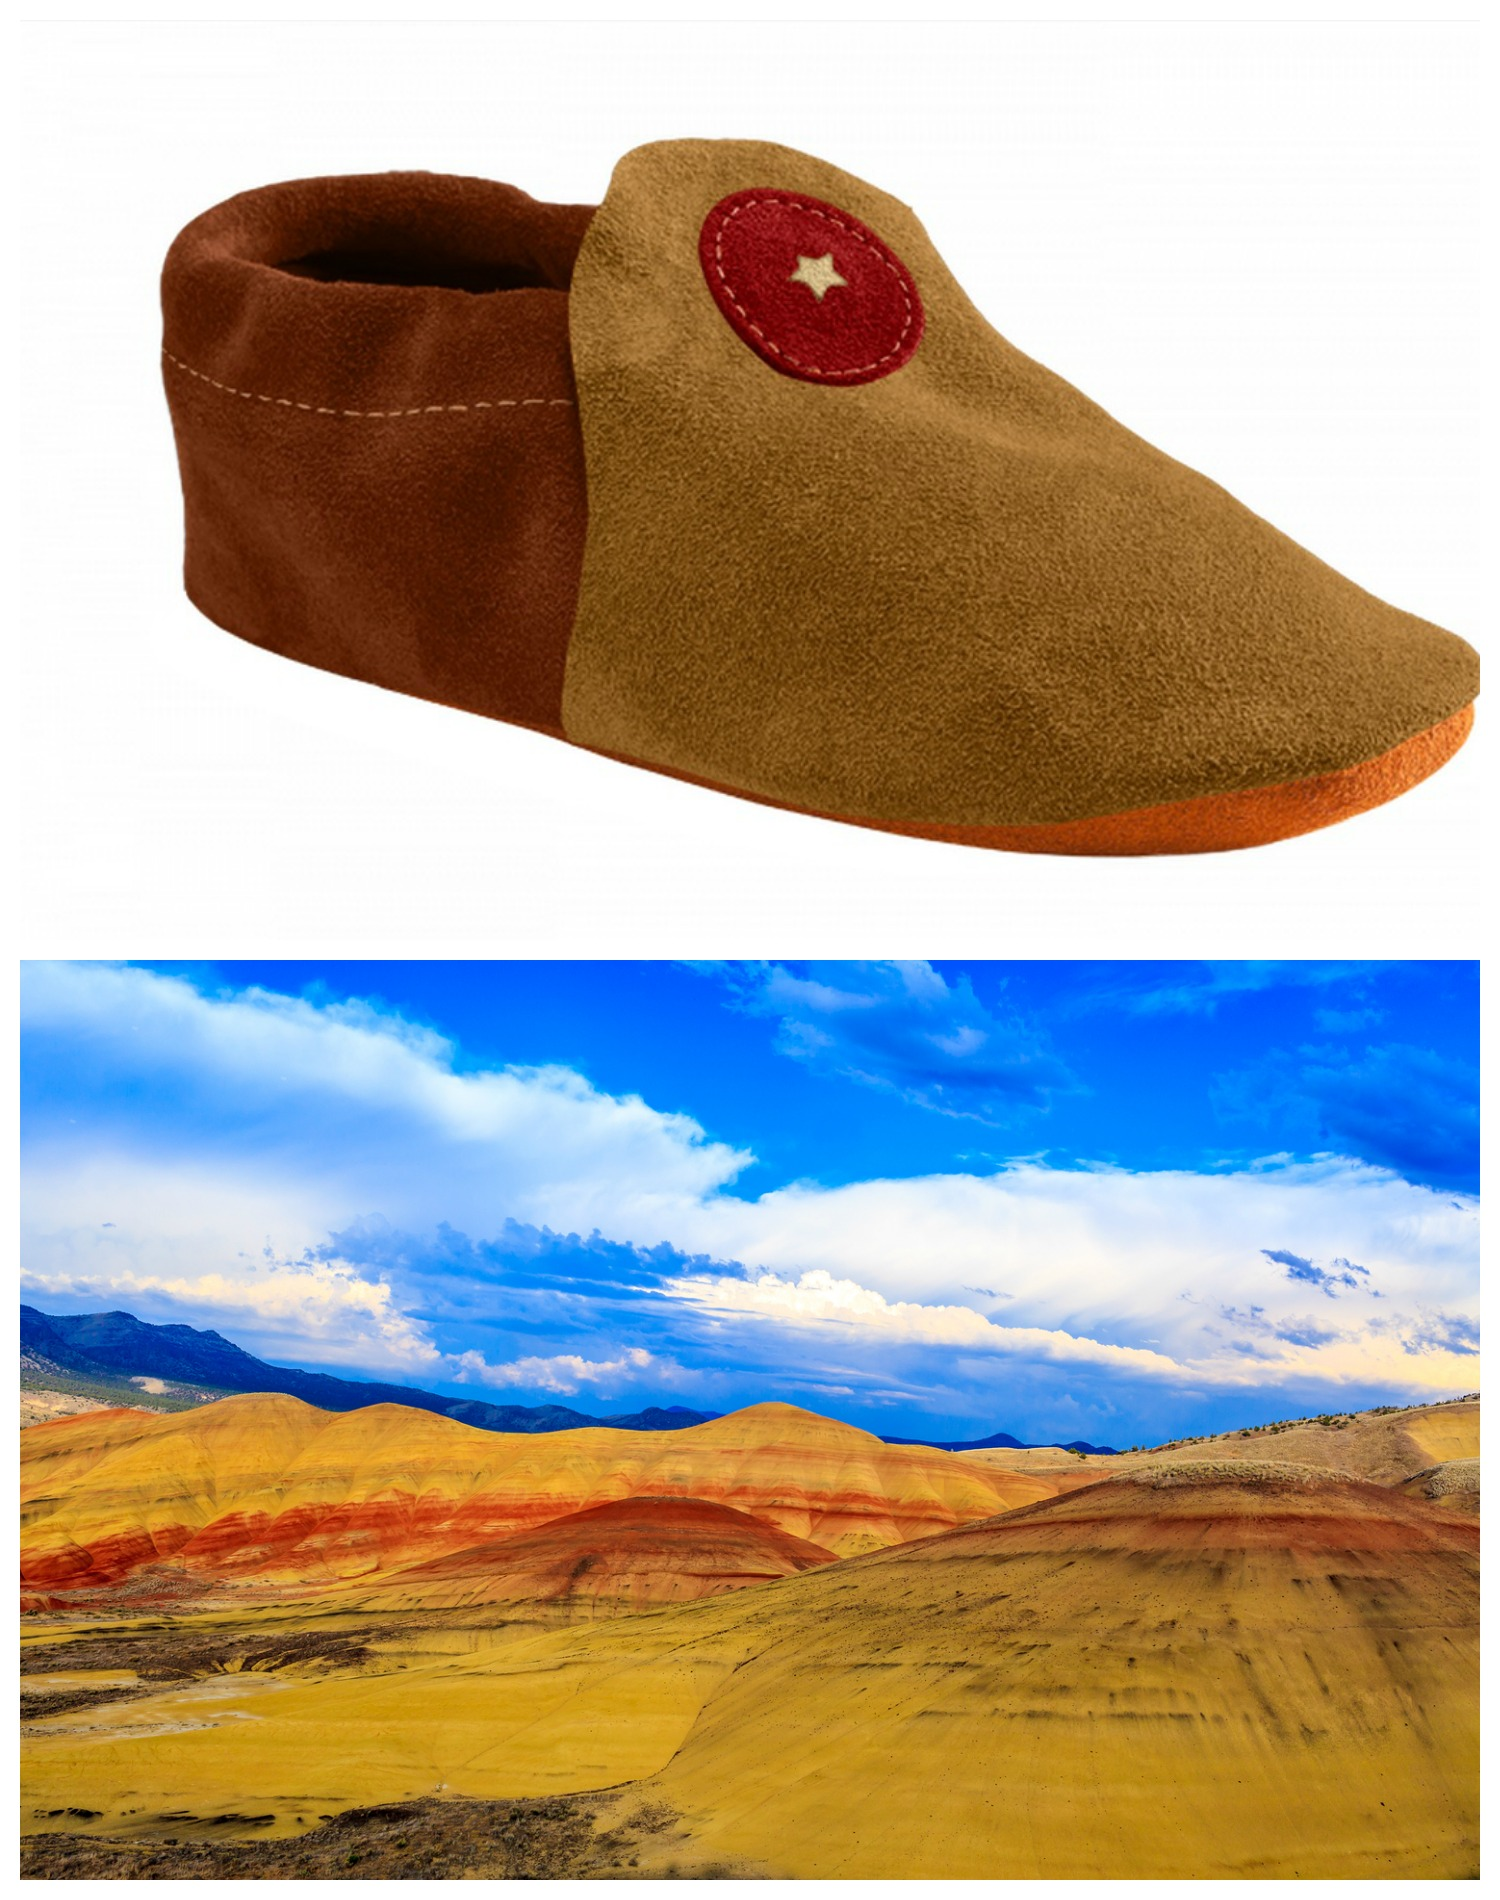 John Day Fossil Beds-Inspired Moccasin